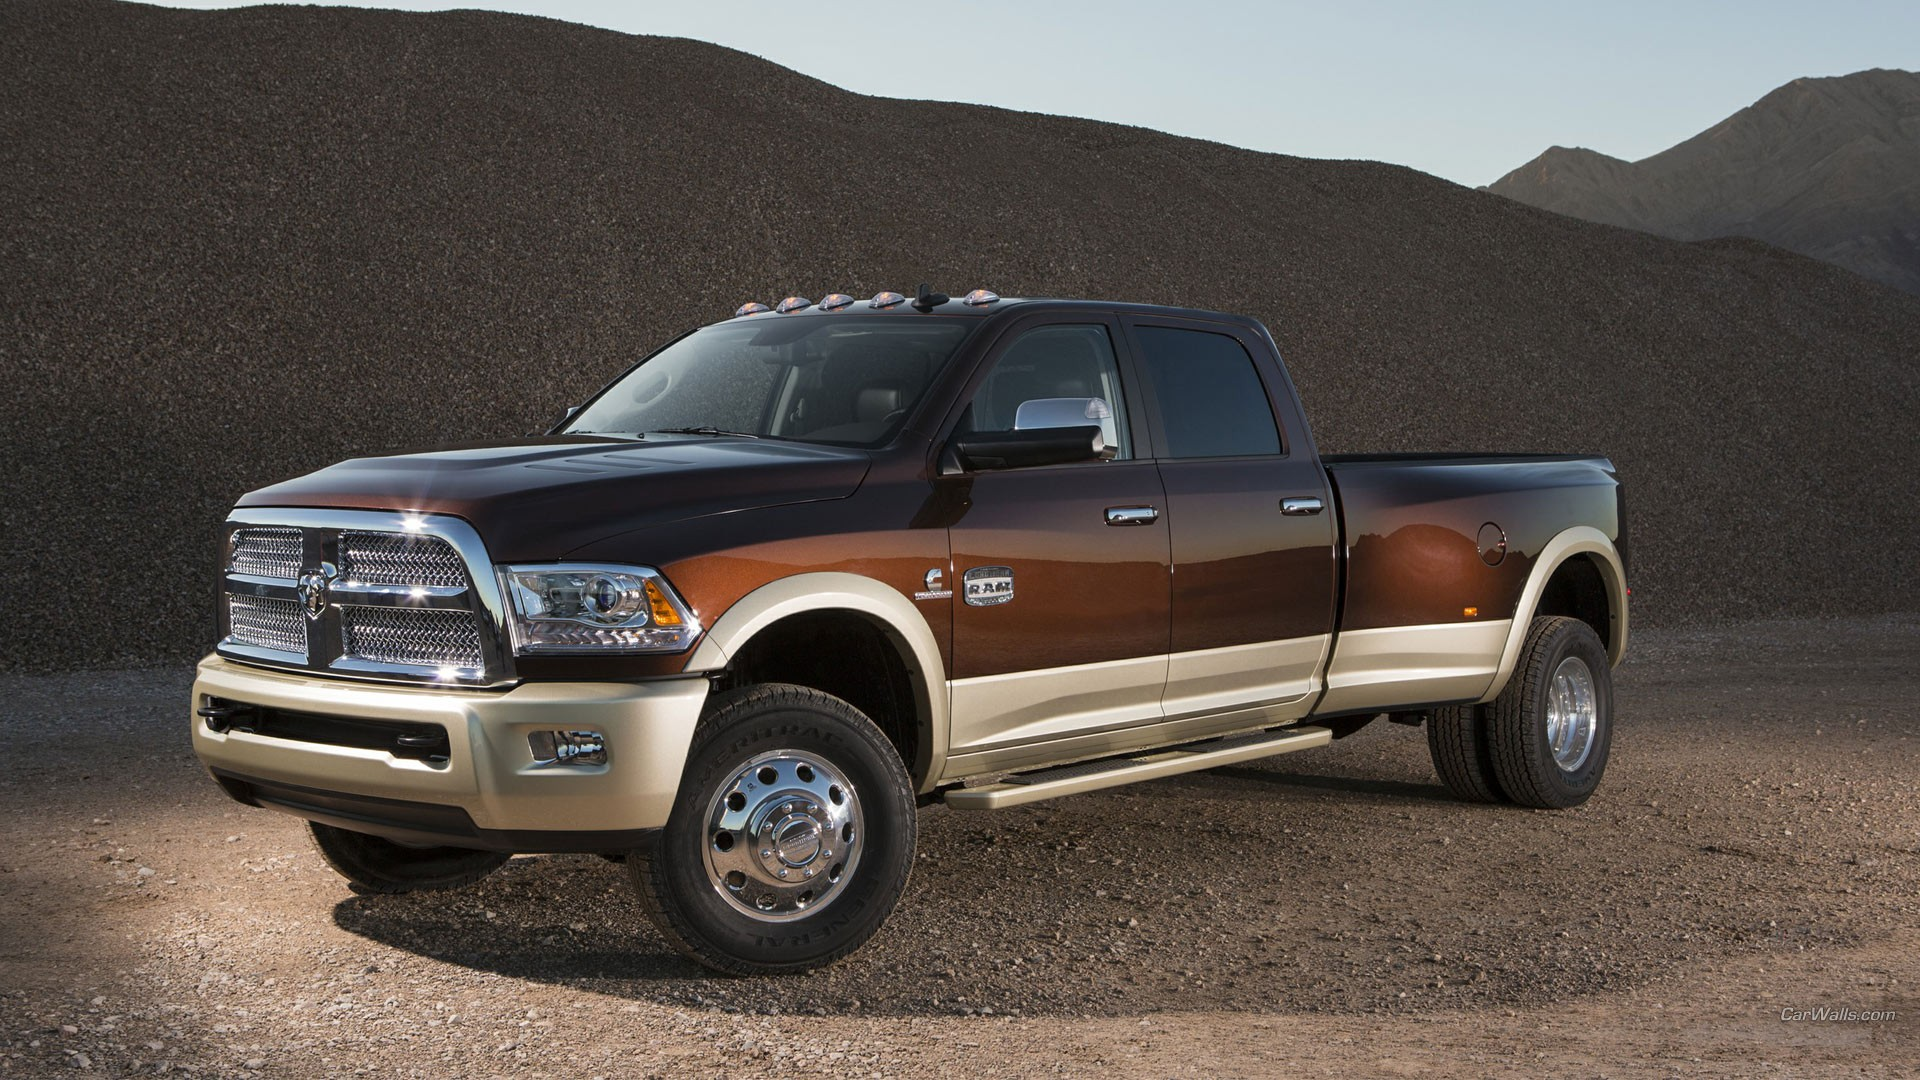 10 Dodge Ram 3500 HD Wallpapers | Background Images ...